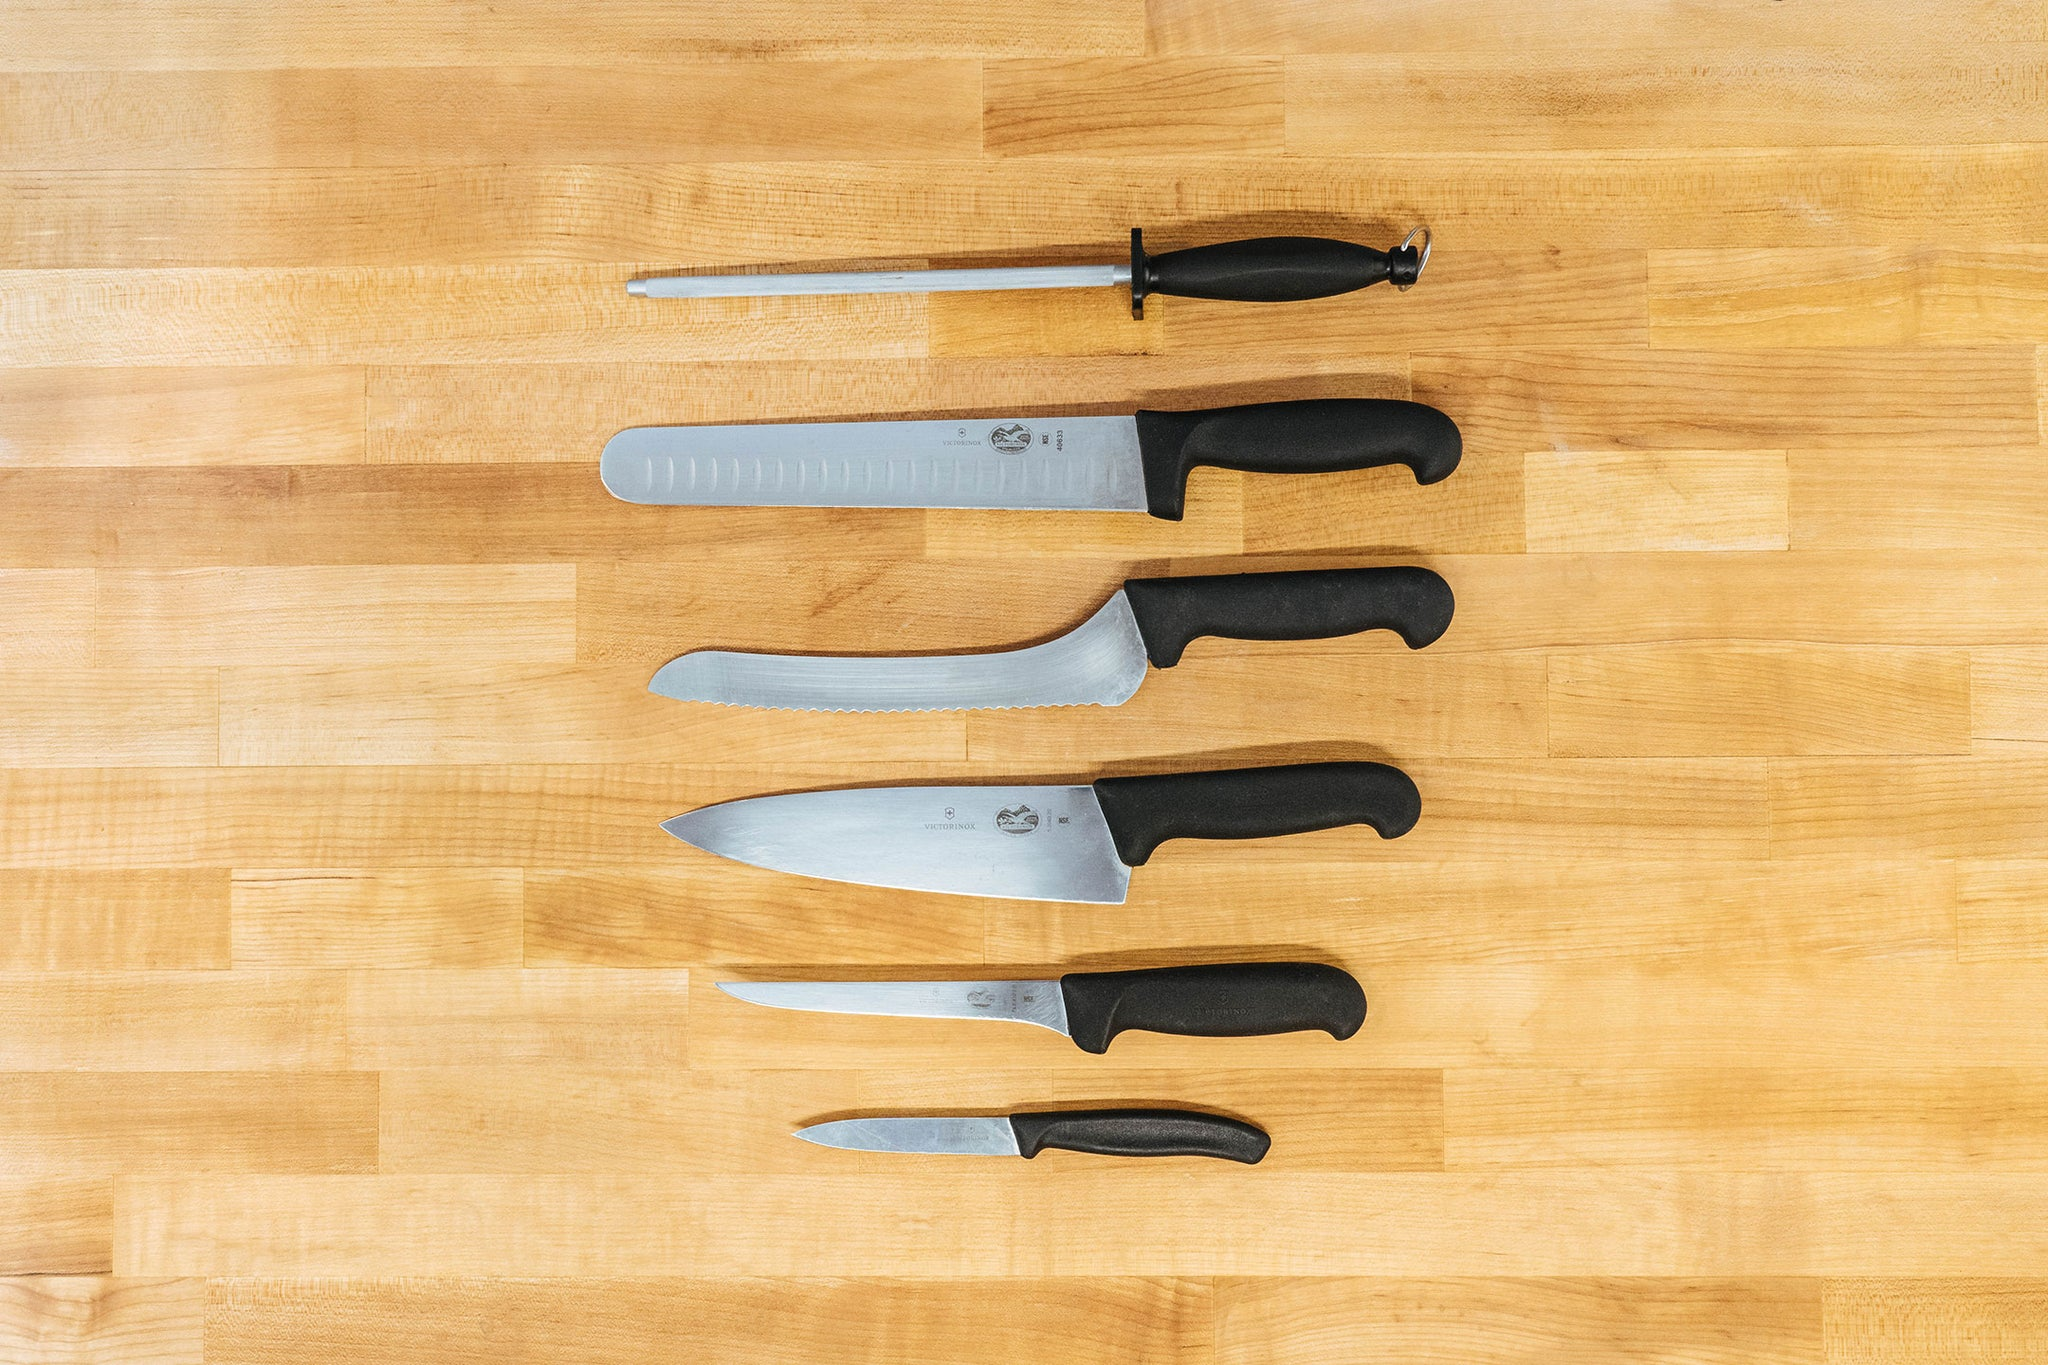 What are different knives and what are they for?